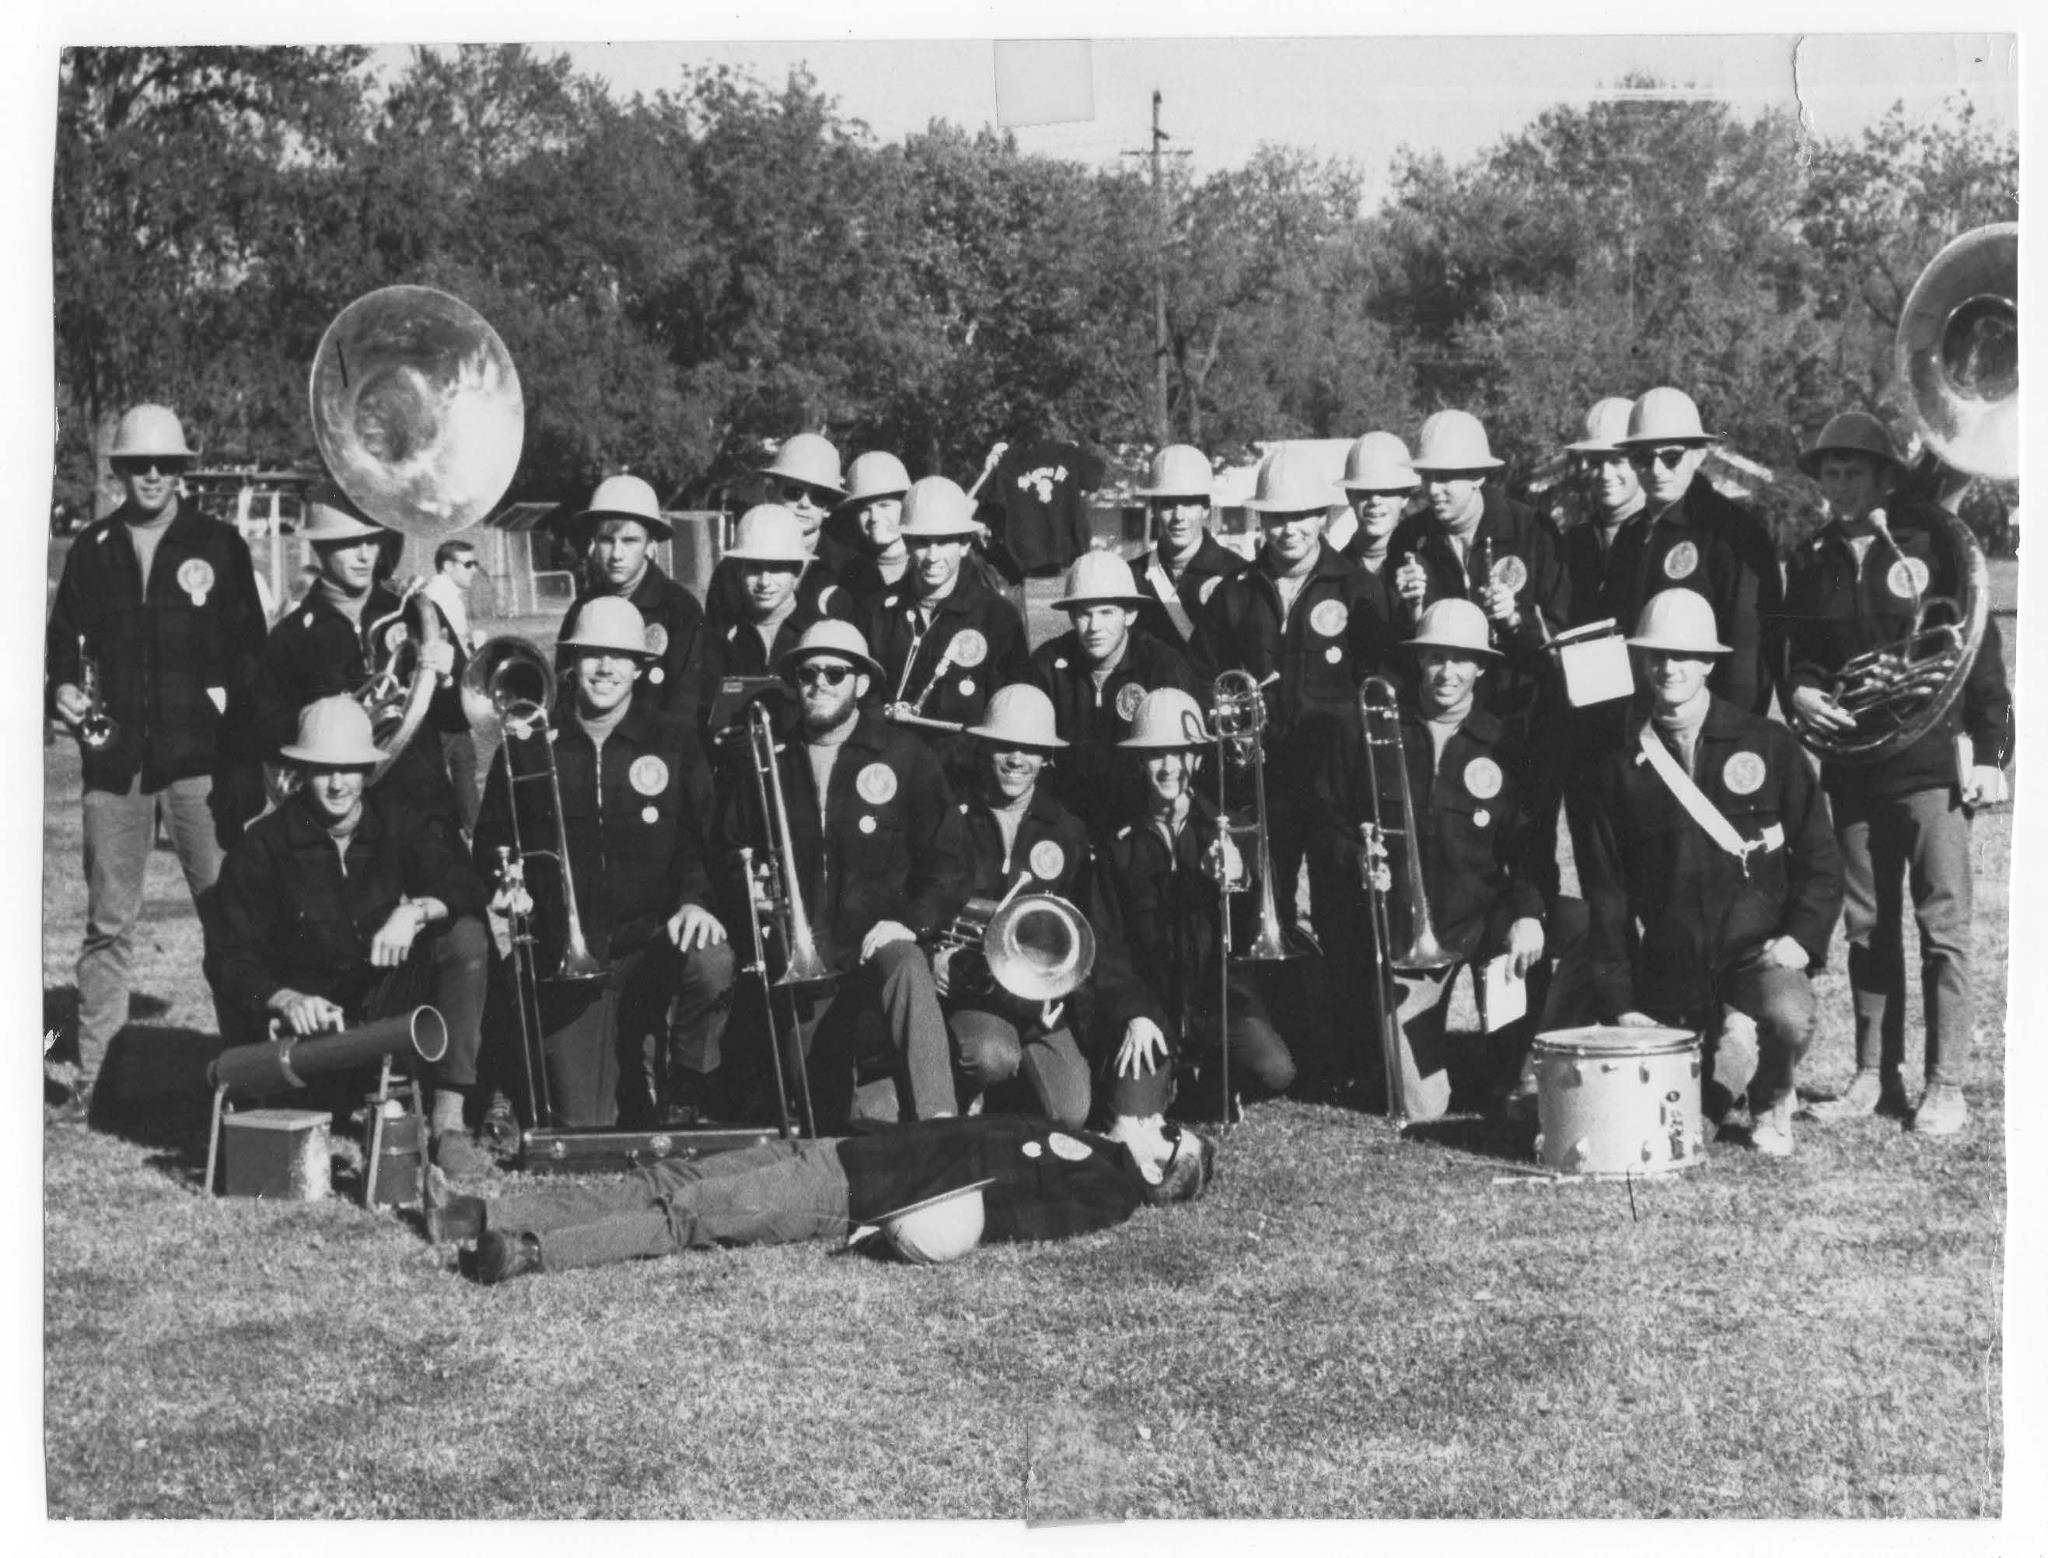 The Marching Lumberjacks circa 1968